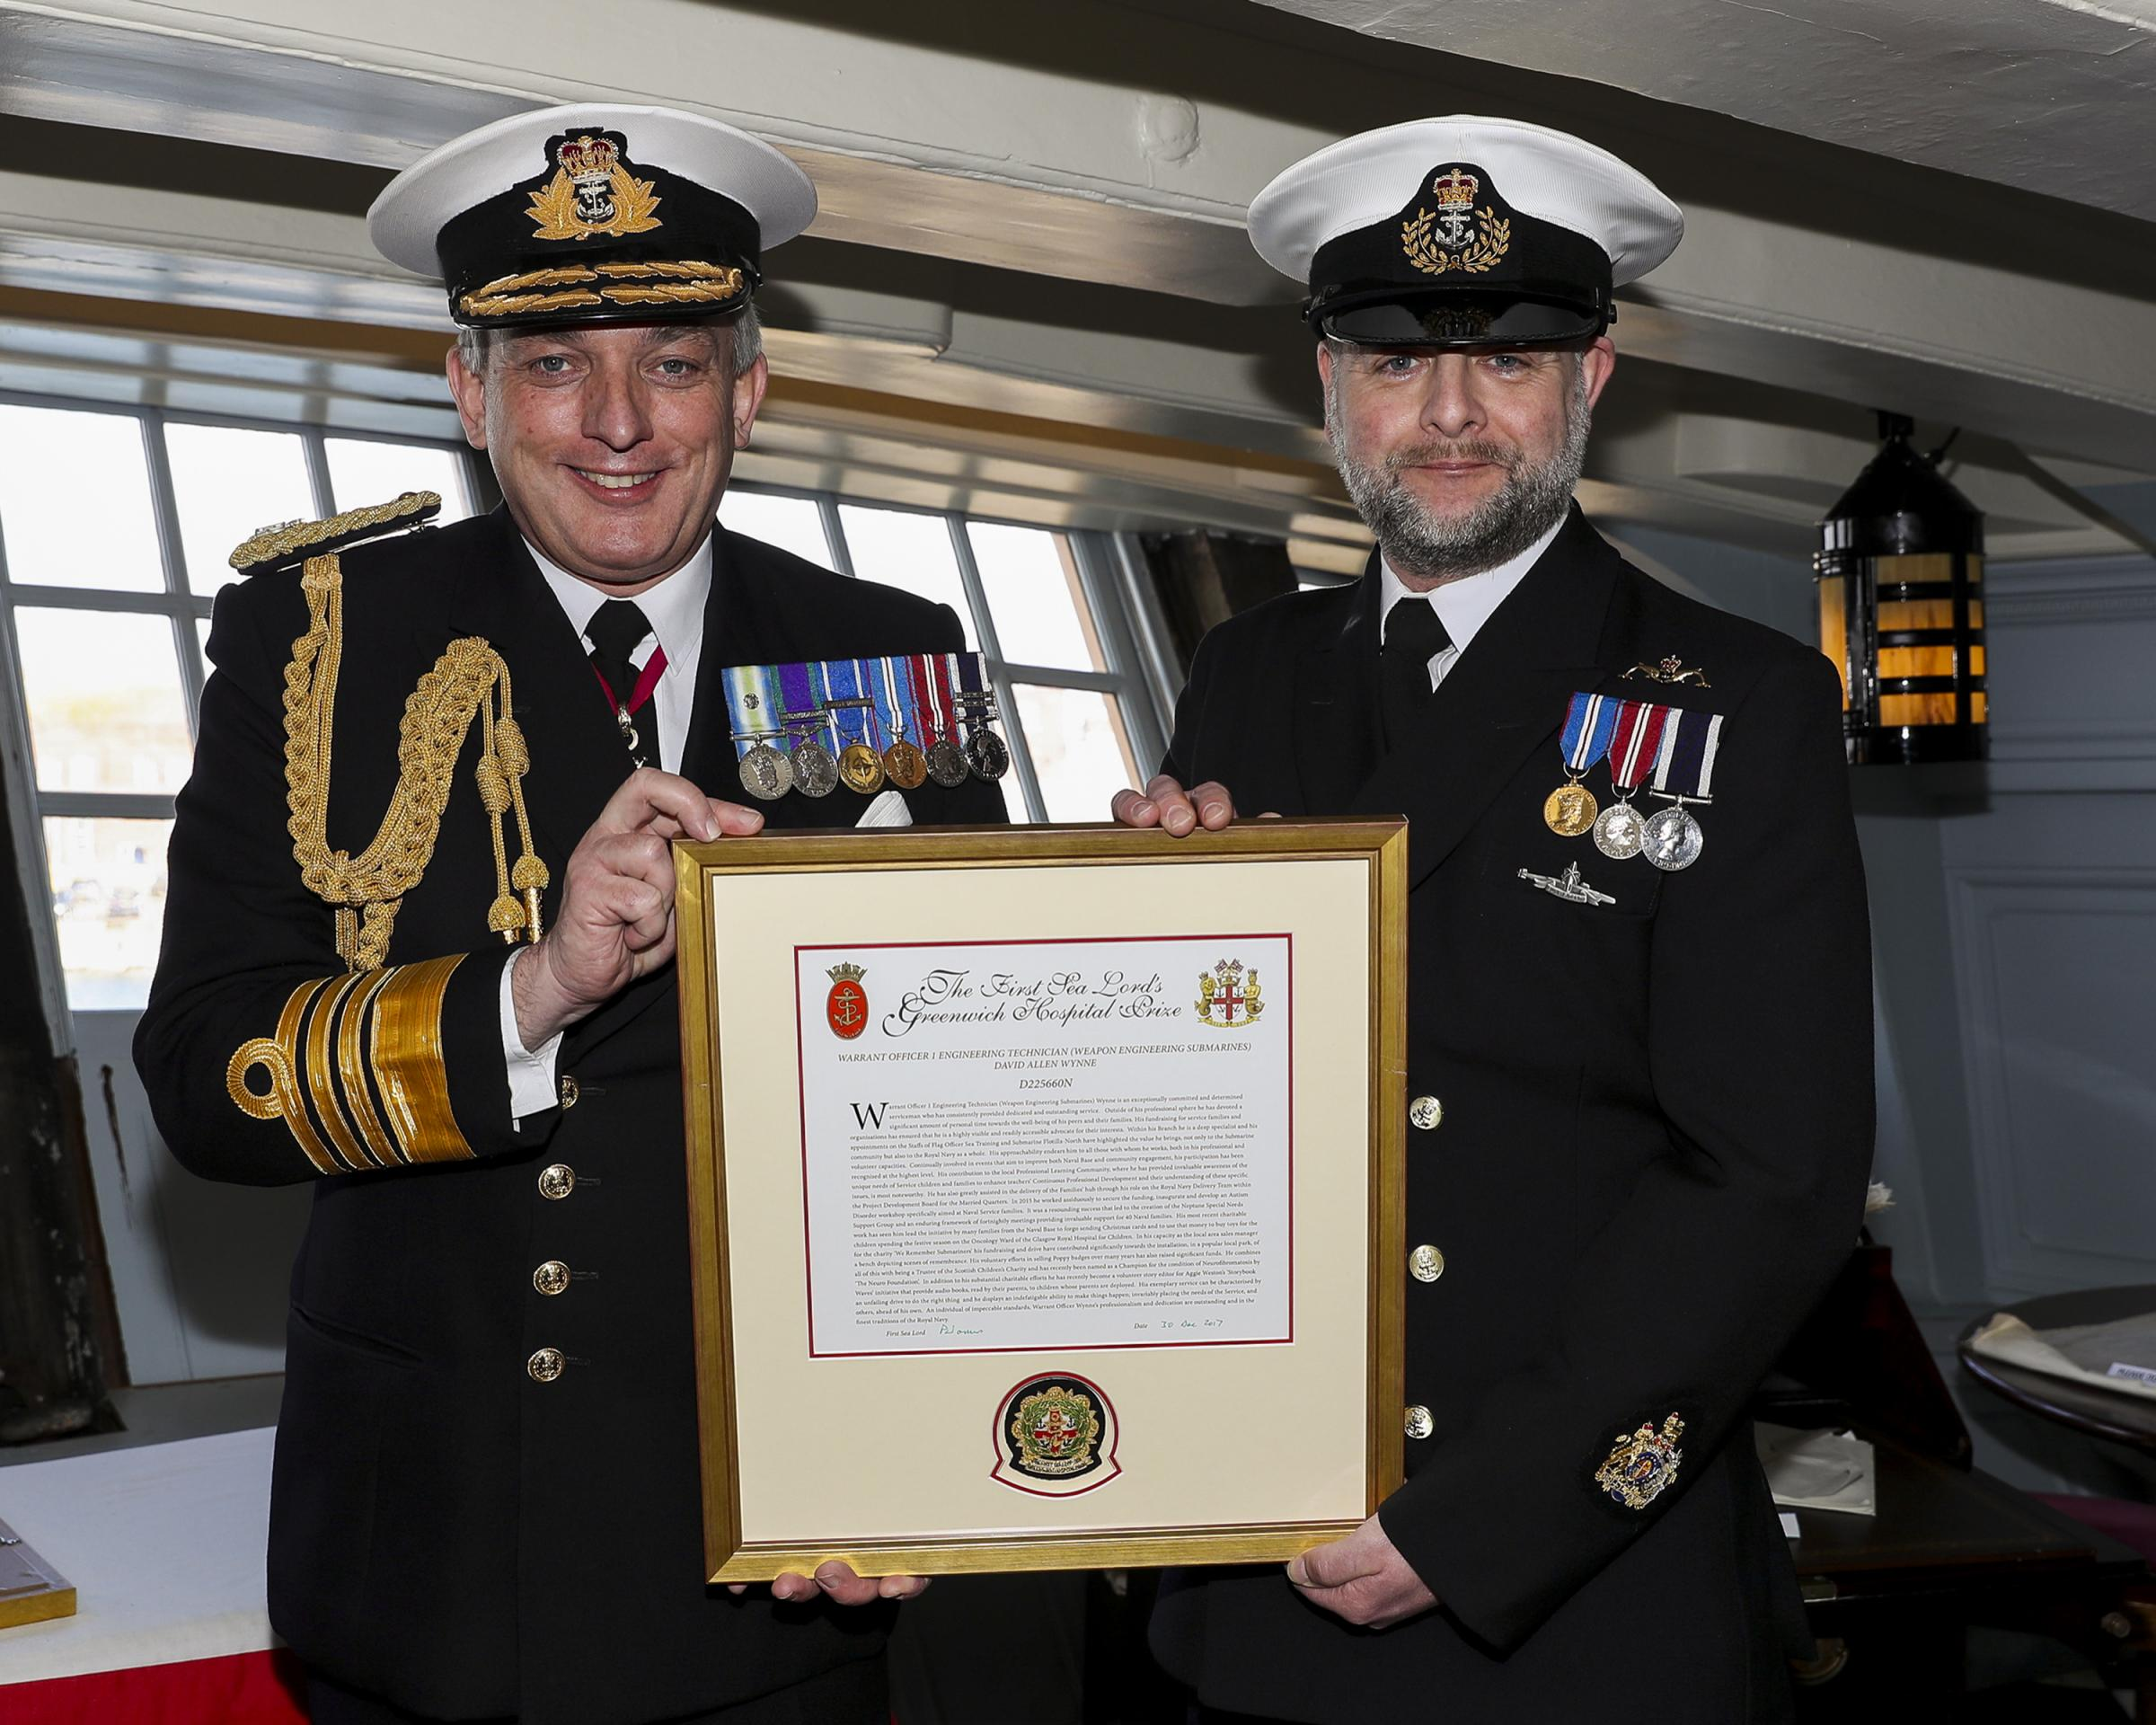 The First Sea Lord, Admiral Sir Philip Jones KCB ADC, with Warrant Officer First Class David Wynne. Picture: Leading Photographer Barry Swainsbury